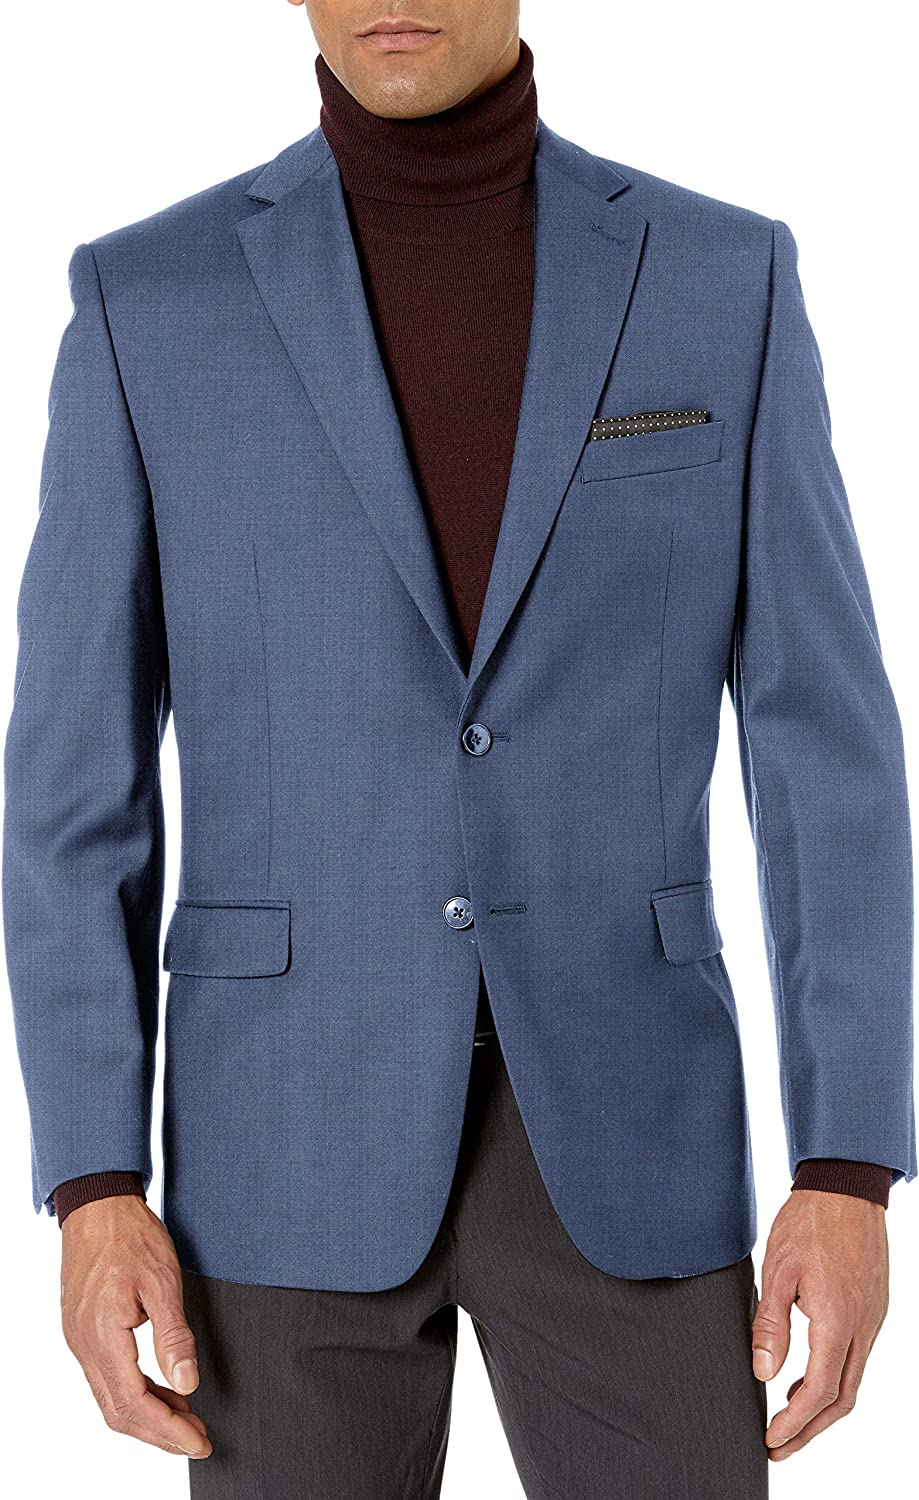 Tommy Hilfiger Mens Big /& Tall Modern Fit Suit Separates with Stretch-Custom Jacket /& Pant Size Selection